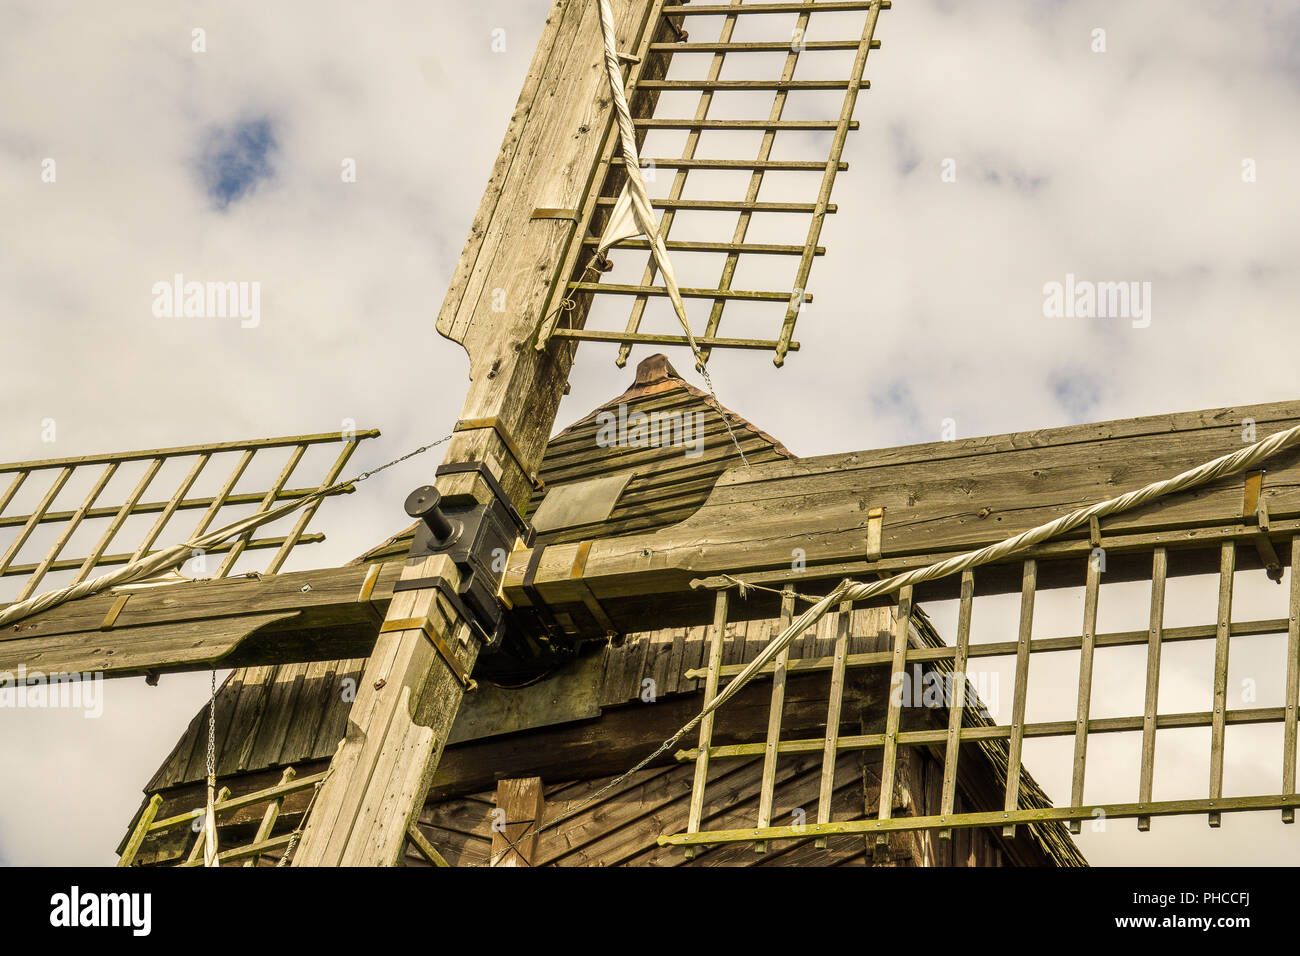 Mill of wood, detailed admission - Stock Image